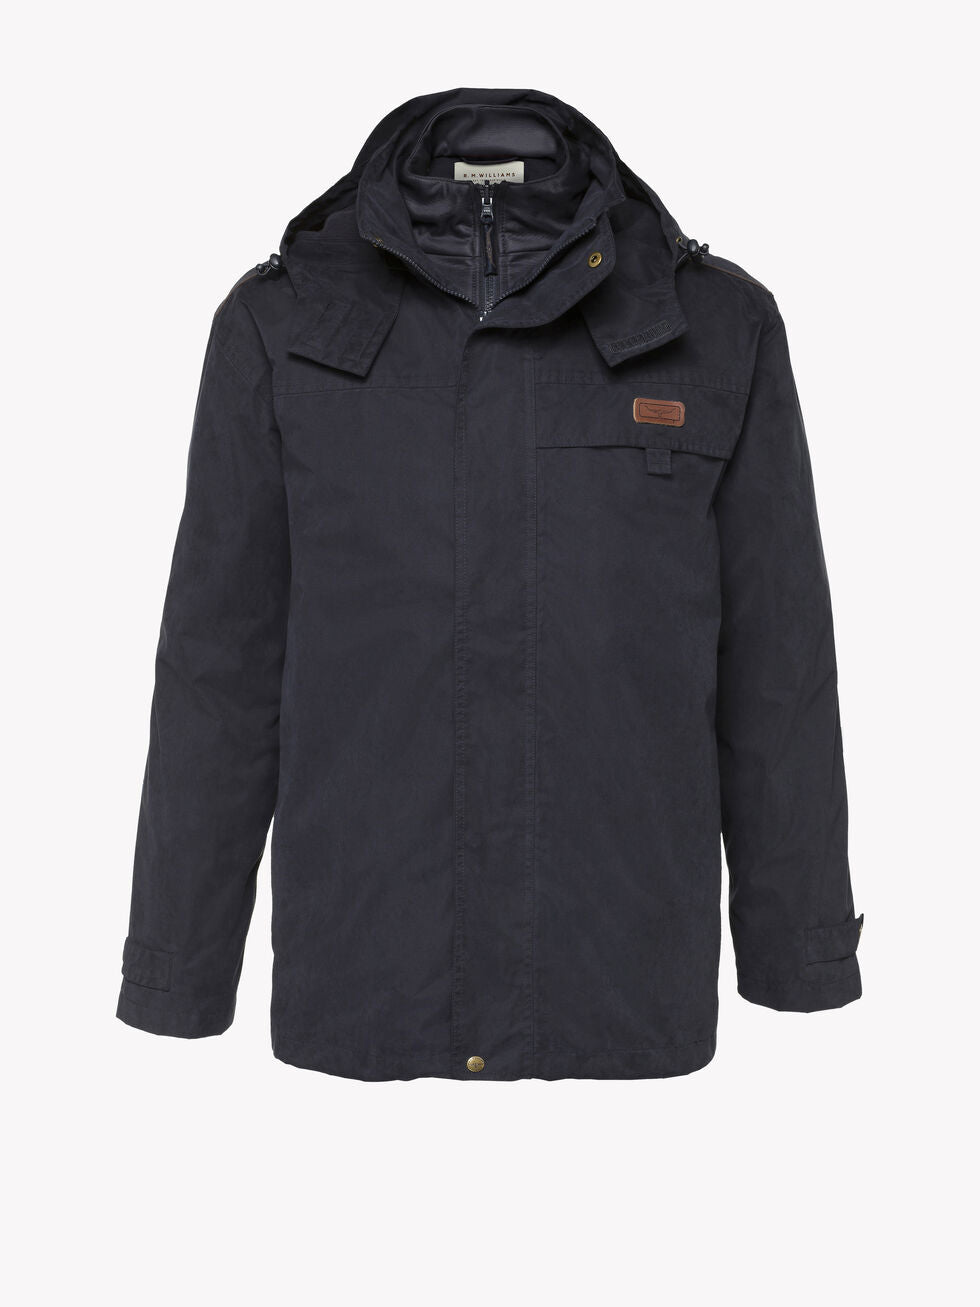 RM Williams Rockley Jacket